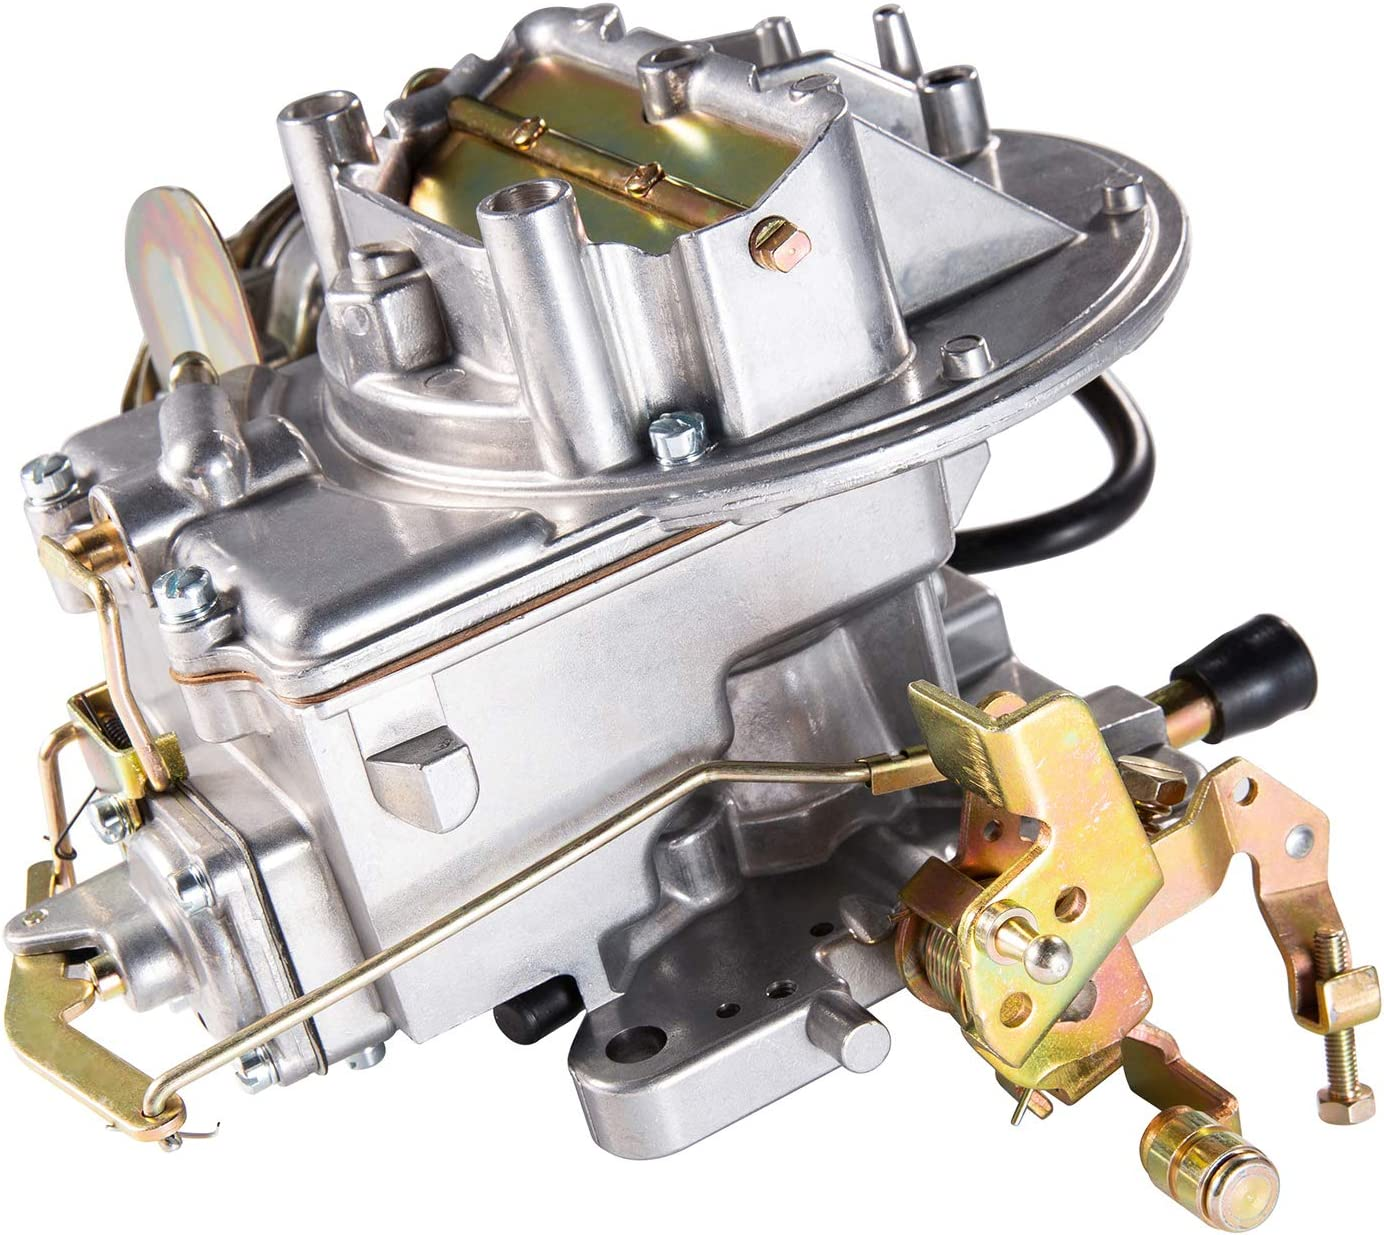 2 Barrel Carburetor 2100 A800 for Mustang Engine 289 302 351 Cu fit Jeep Wagoneer 1964~1978 Engine 360 Cu with Mounting Gasket and Automatic Choke Carburetor for Ford F100 F250 F350